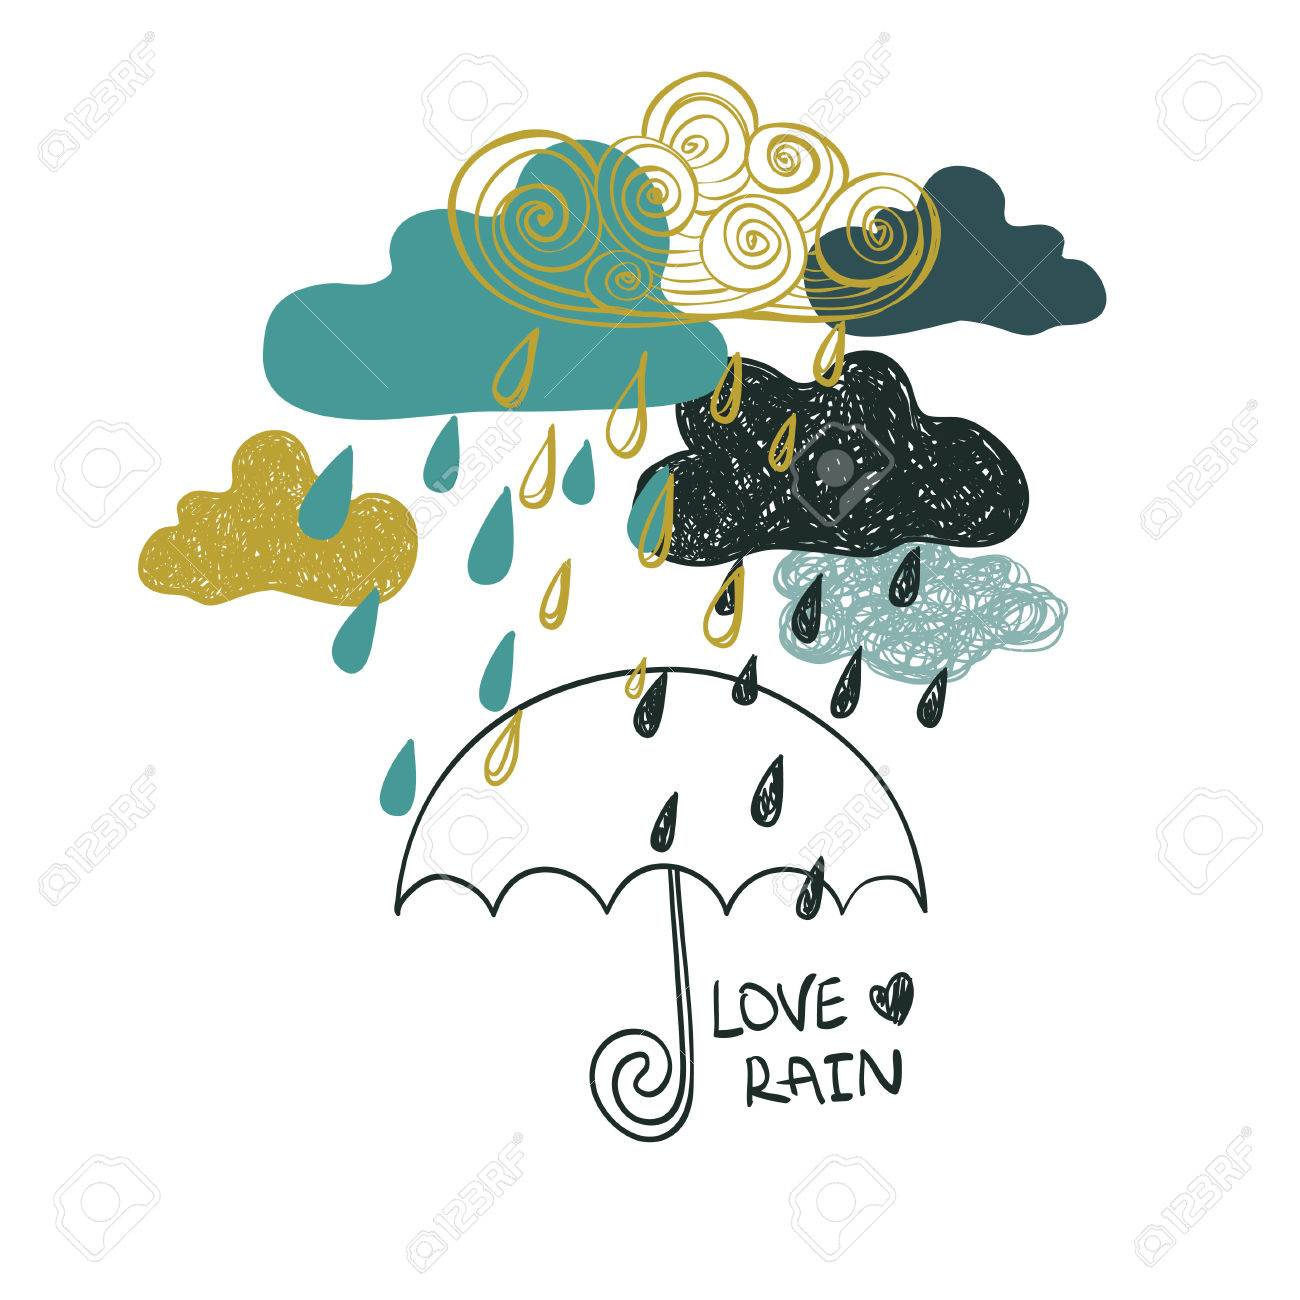 Illustration of cute colorful rain clouds and umbrella creative illustration of cute colorful rain clouds and umbrella creative rainy background or card concept thecheapjerseys Gallery